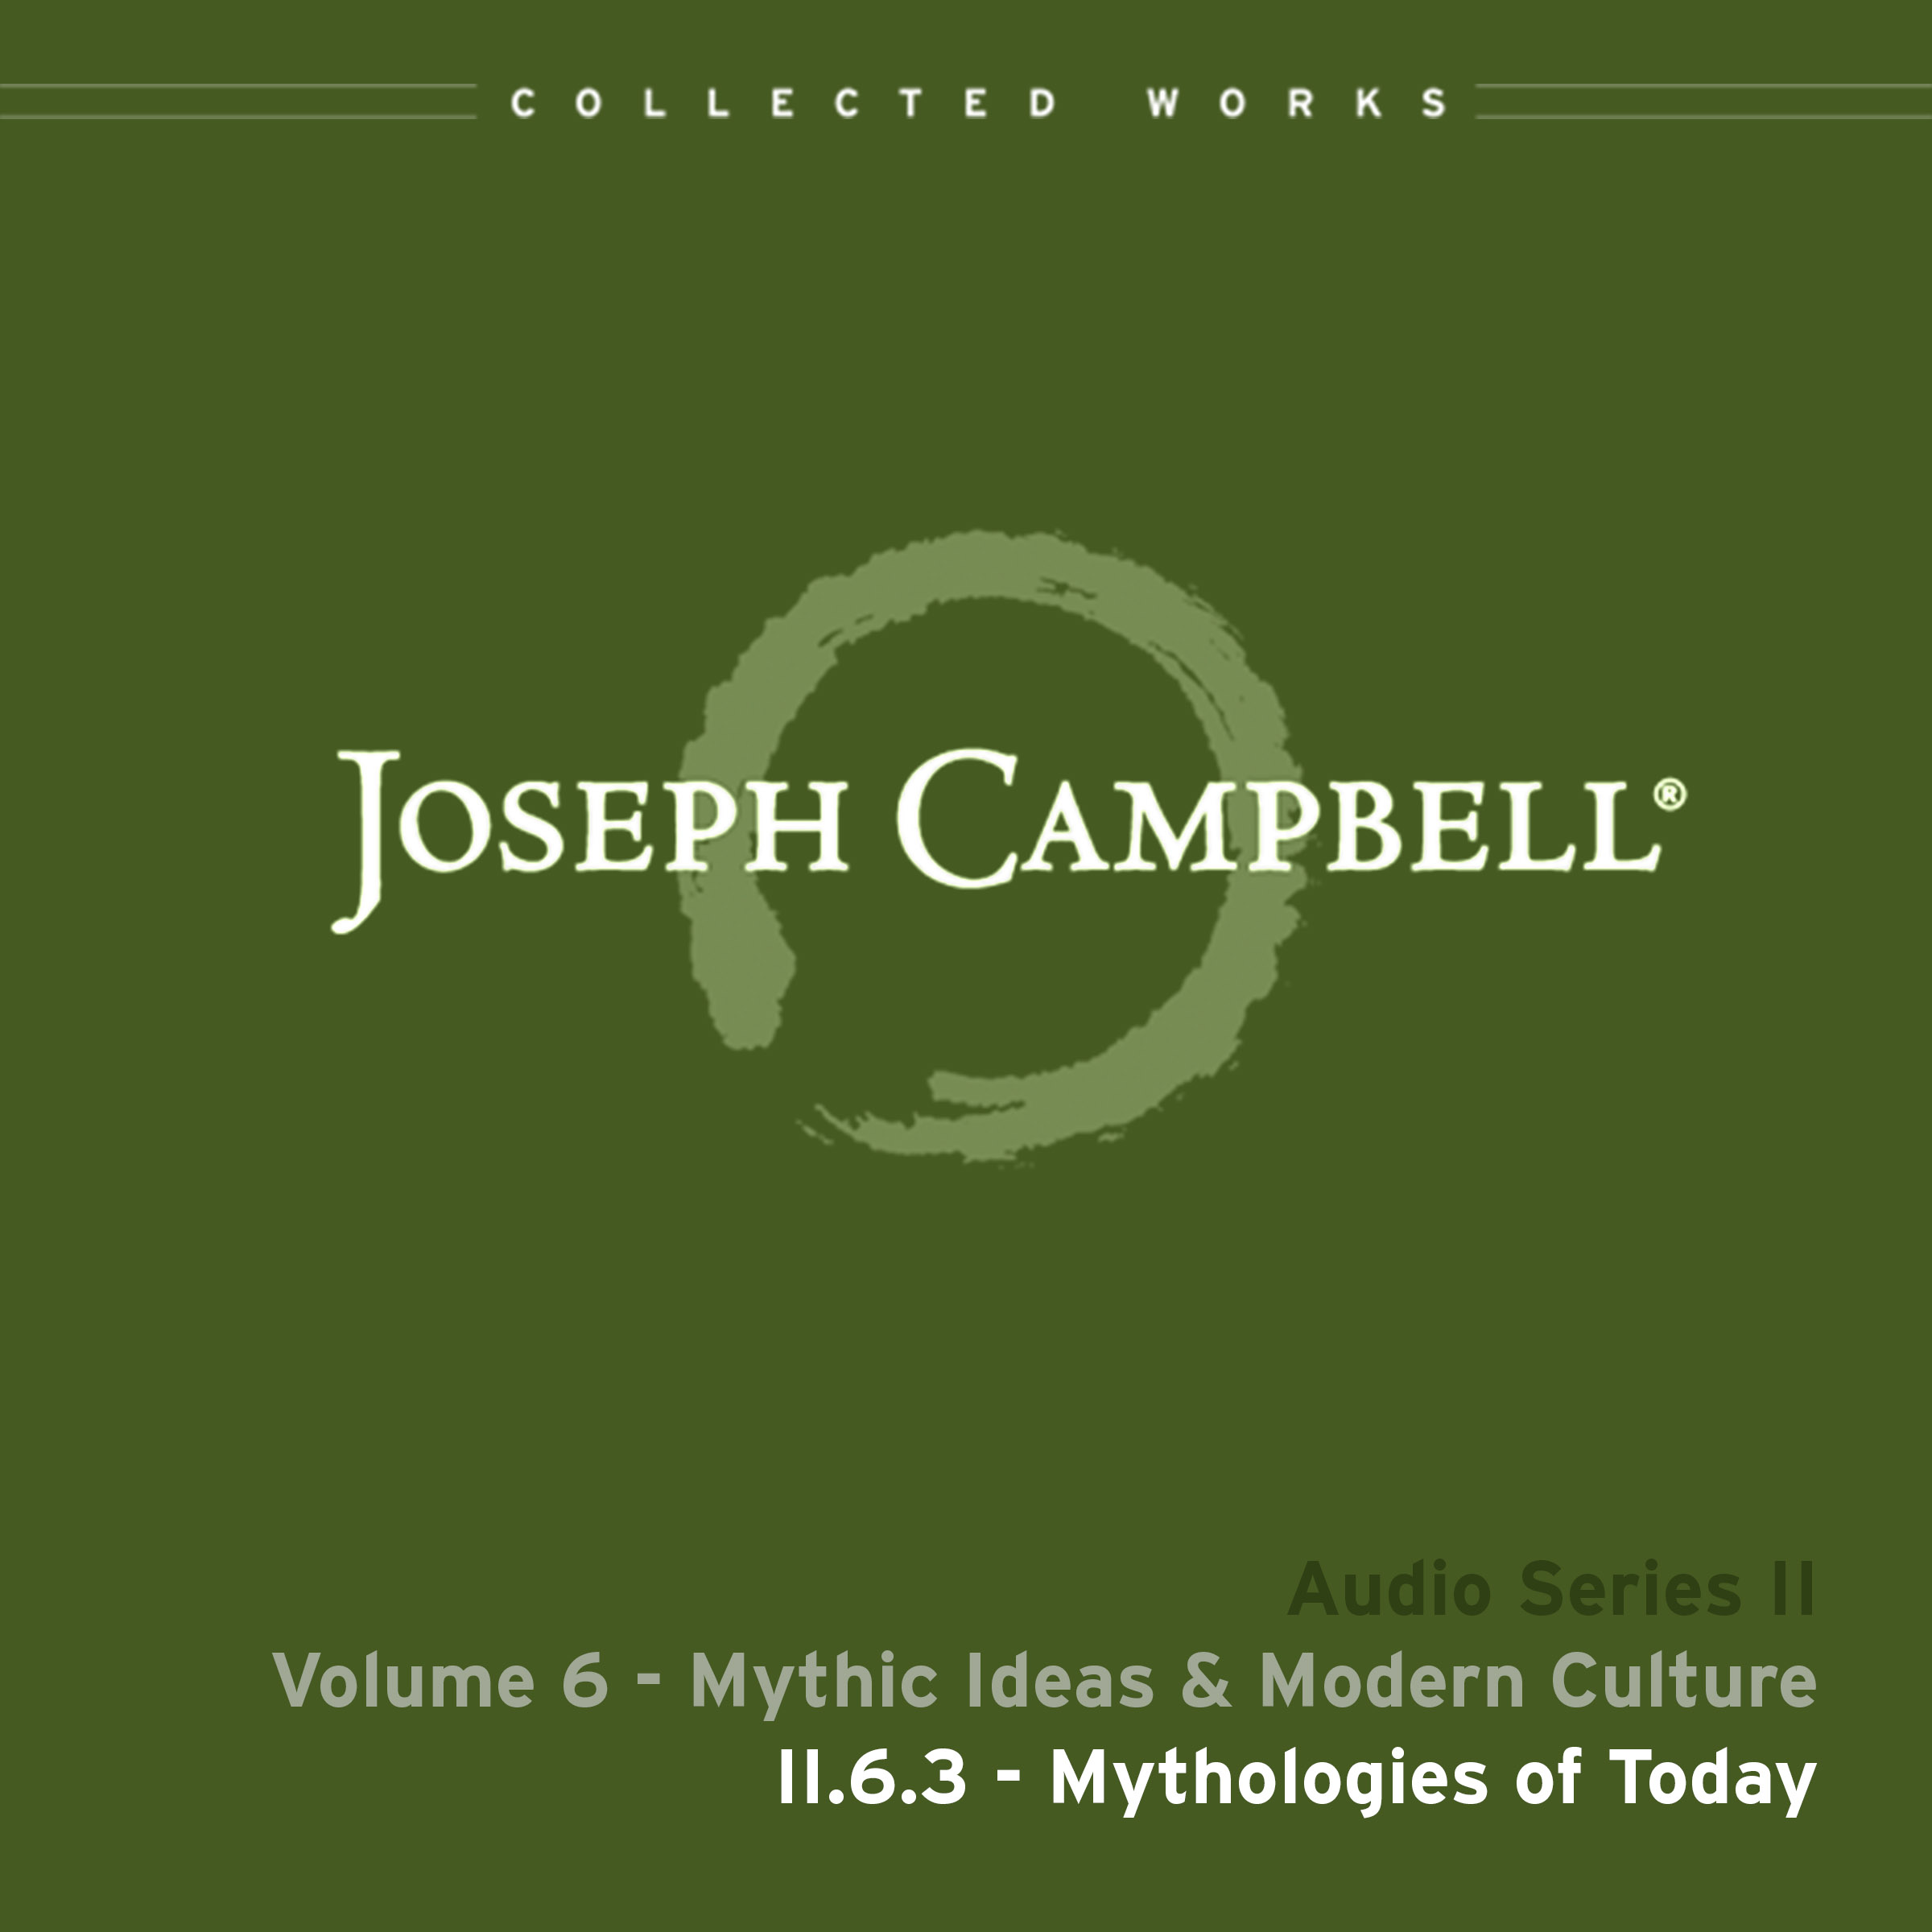 Audio: Lecture II.6.3 - Mythology of Today